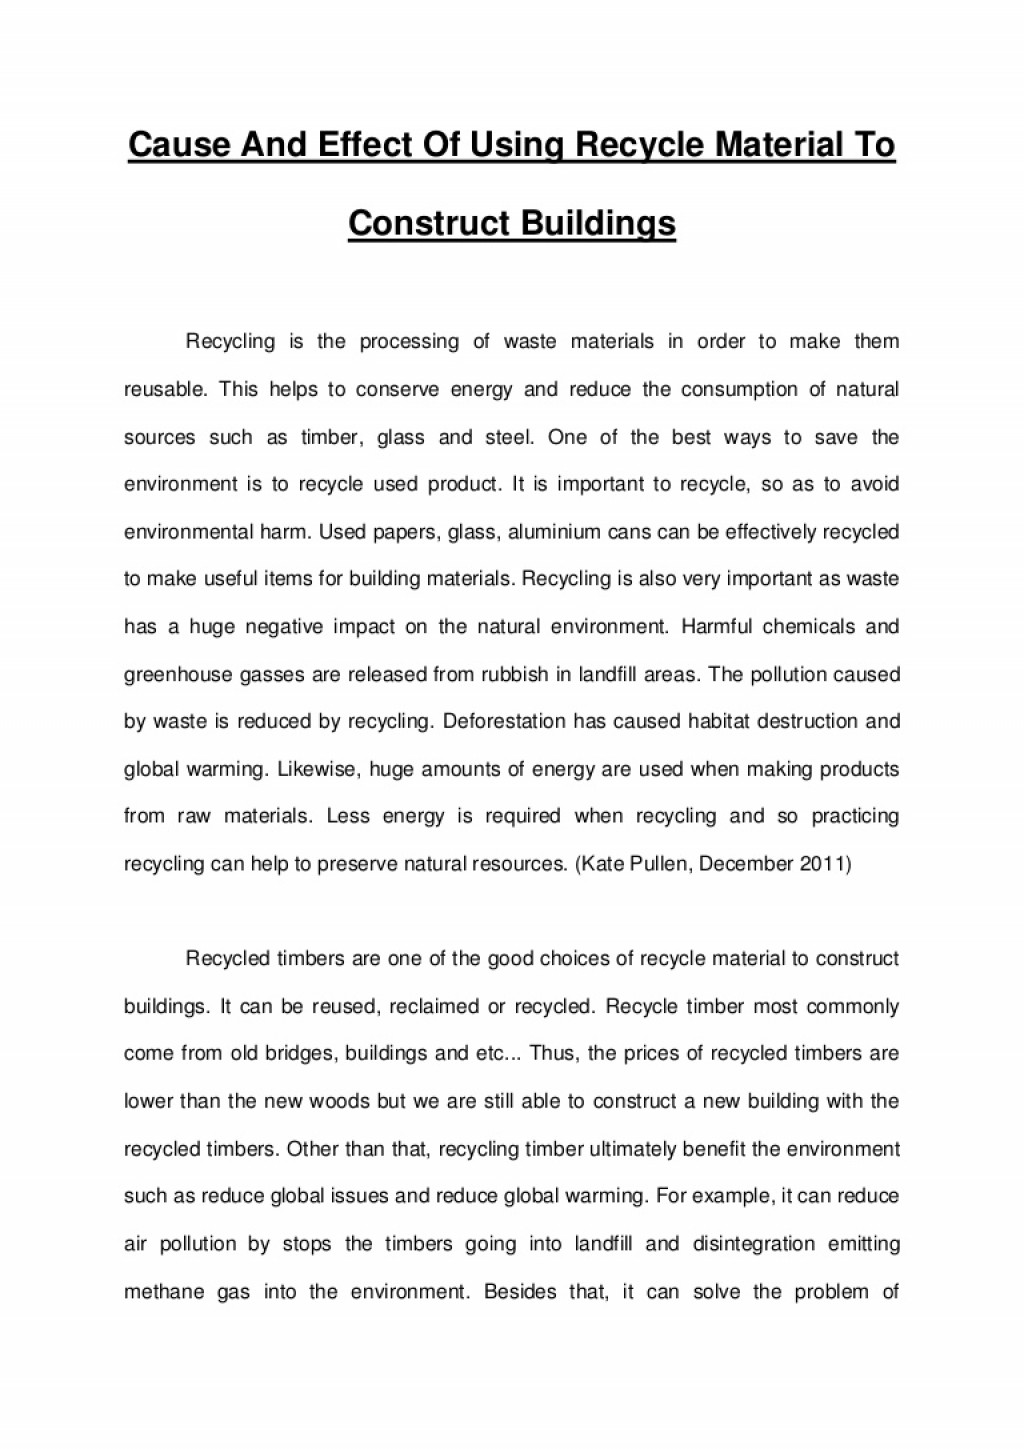 026 Persuasive Researchs Astounding Research Papers Interesting Topics For Large